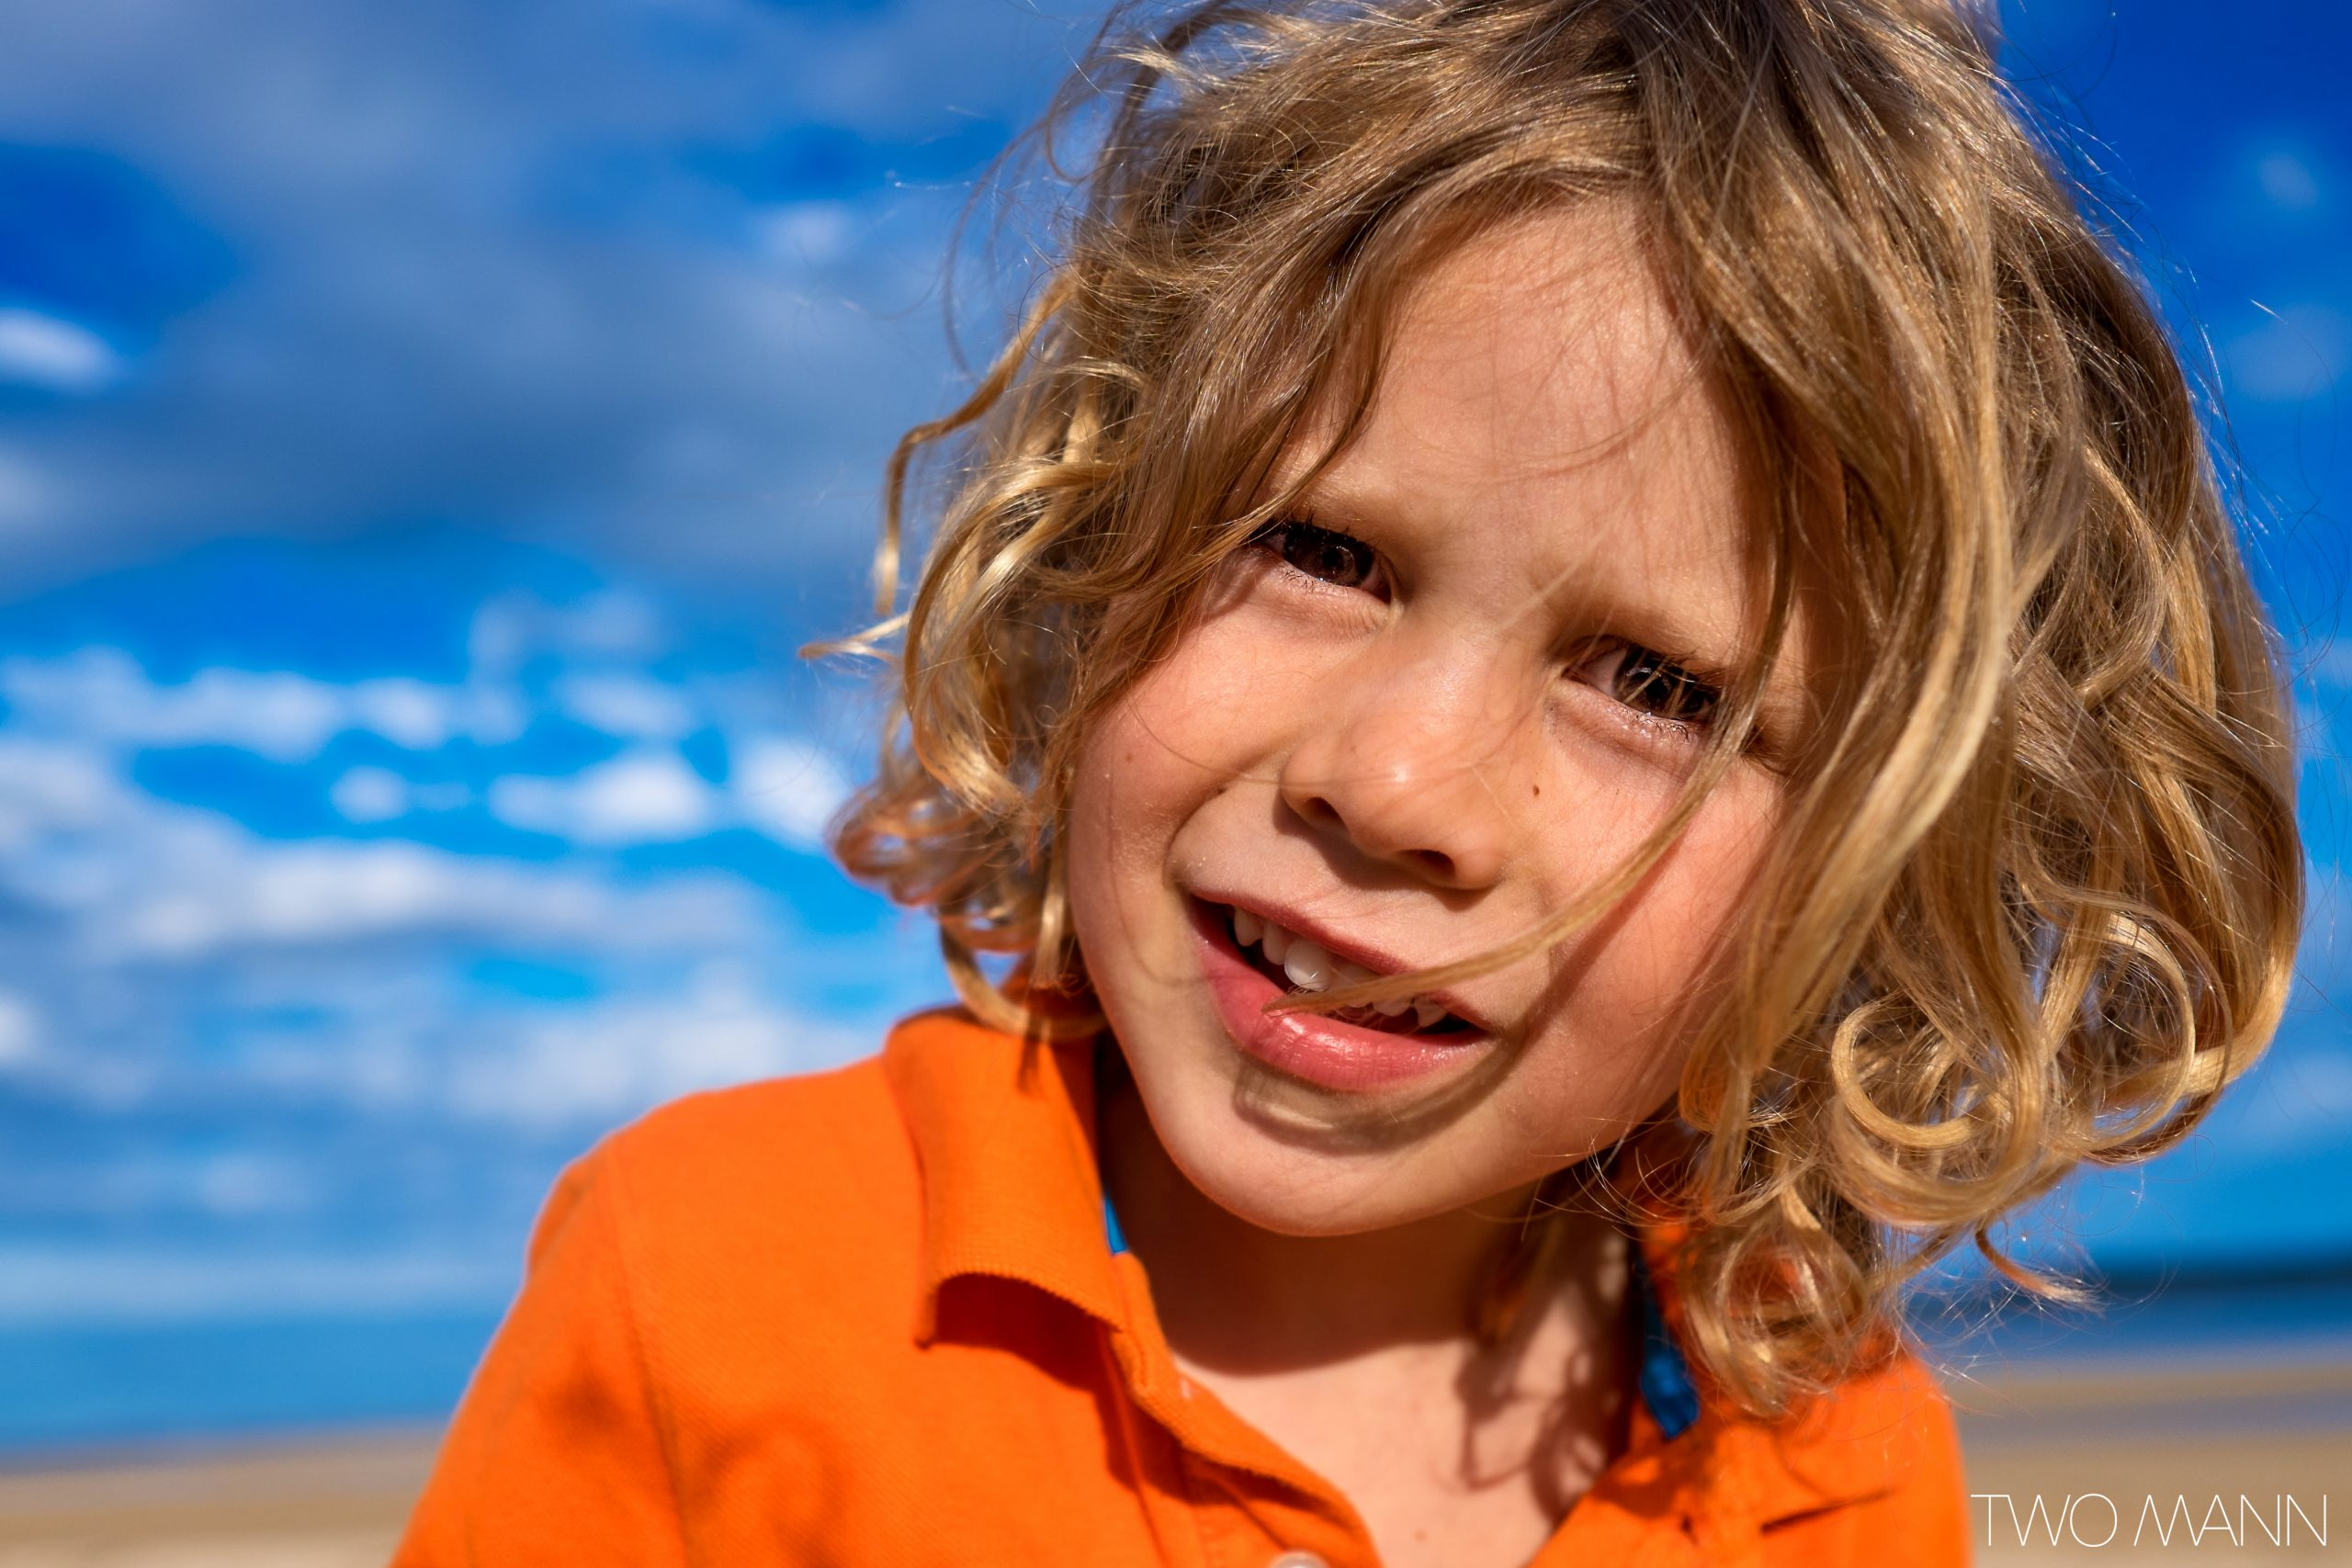 Close up of little boy with long blonde hair on the beach